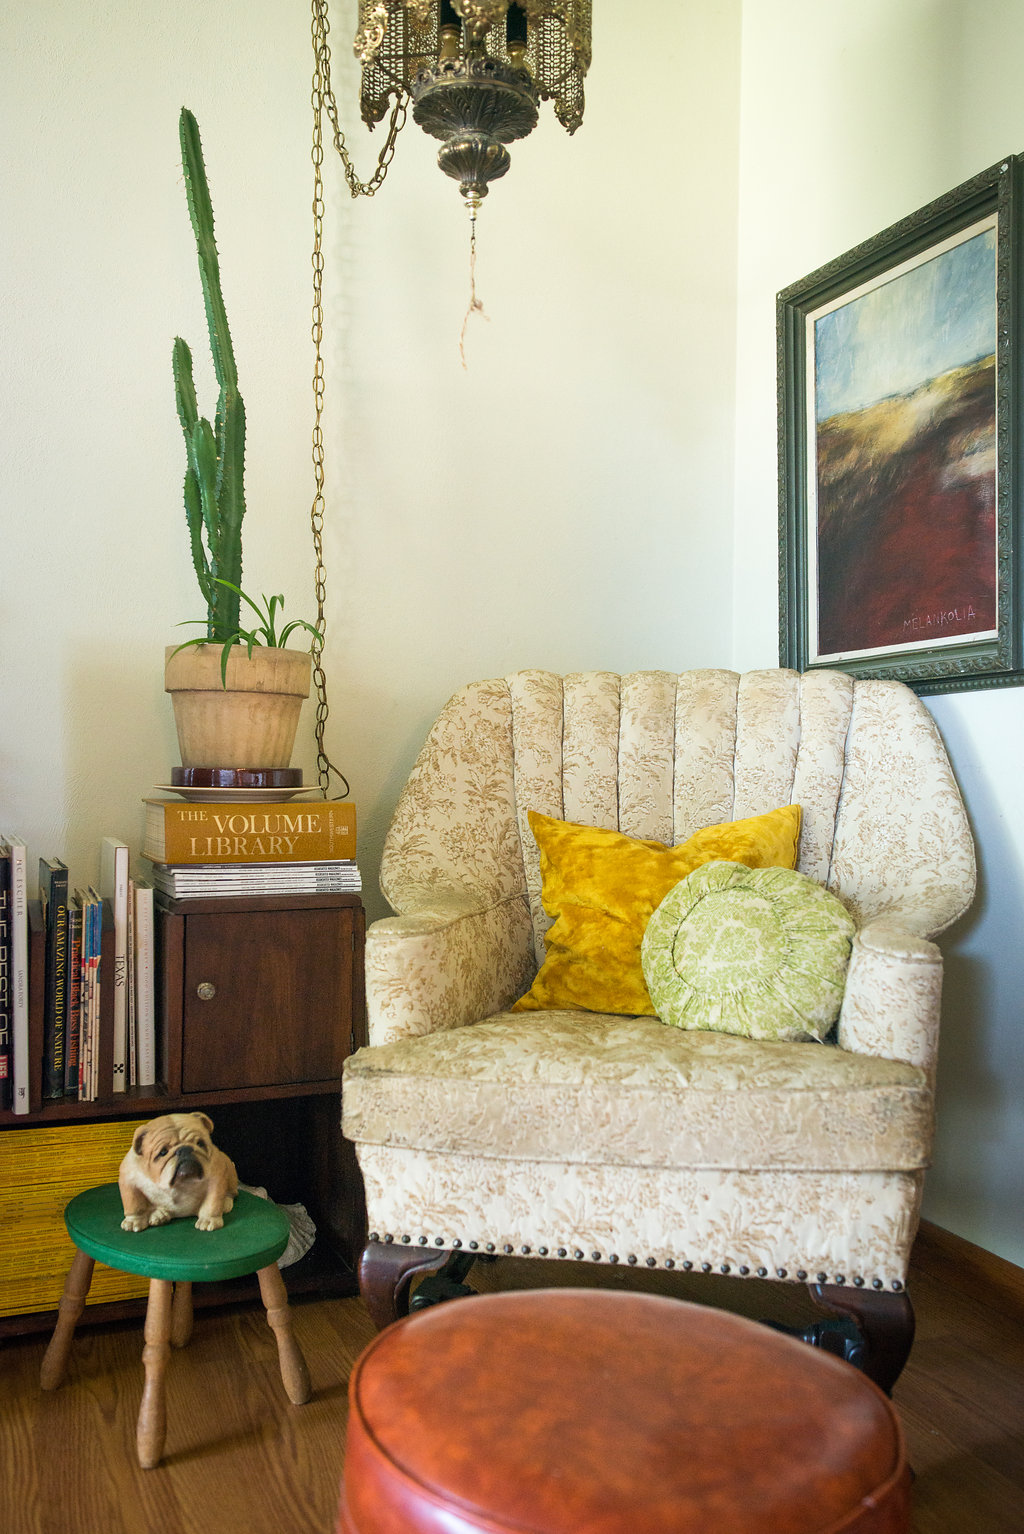 The little bulldog was my grandpa's as was the awesome light hanging above. Another Olaf Bisschoff hangs above the chair and my dad's old footstool in front.  Plus the ever-present National Geographic mags.